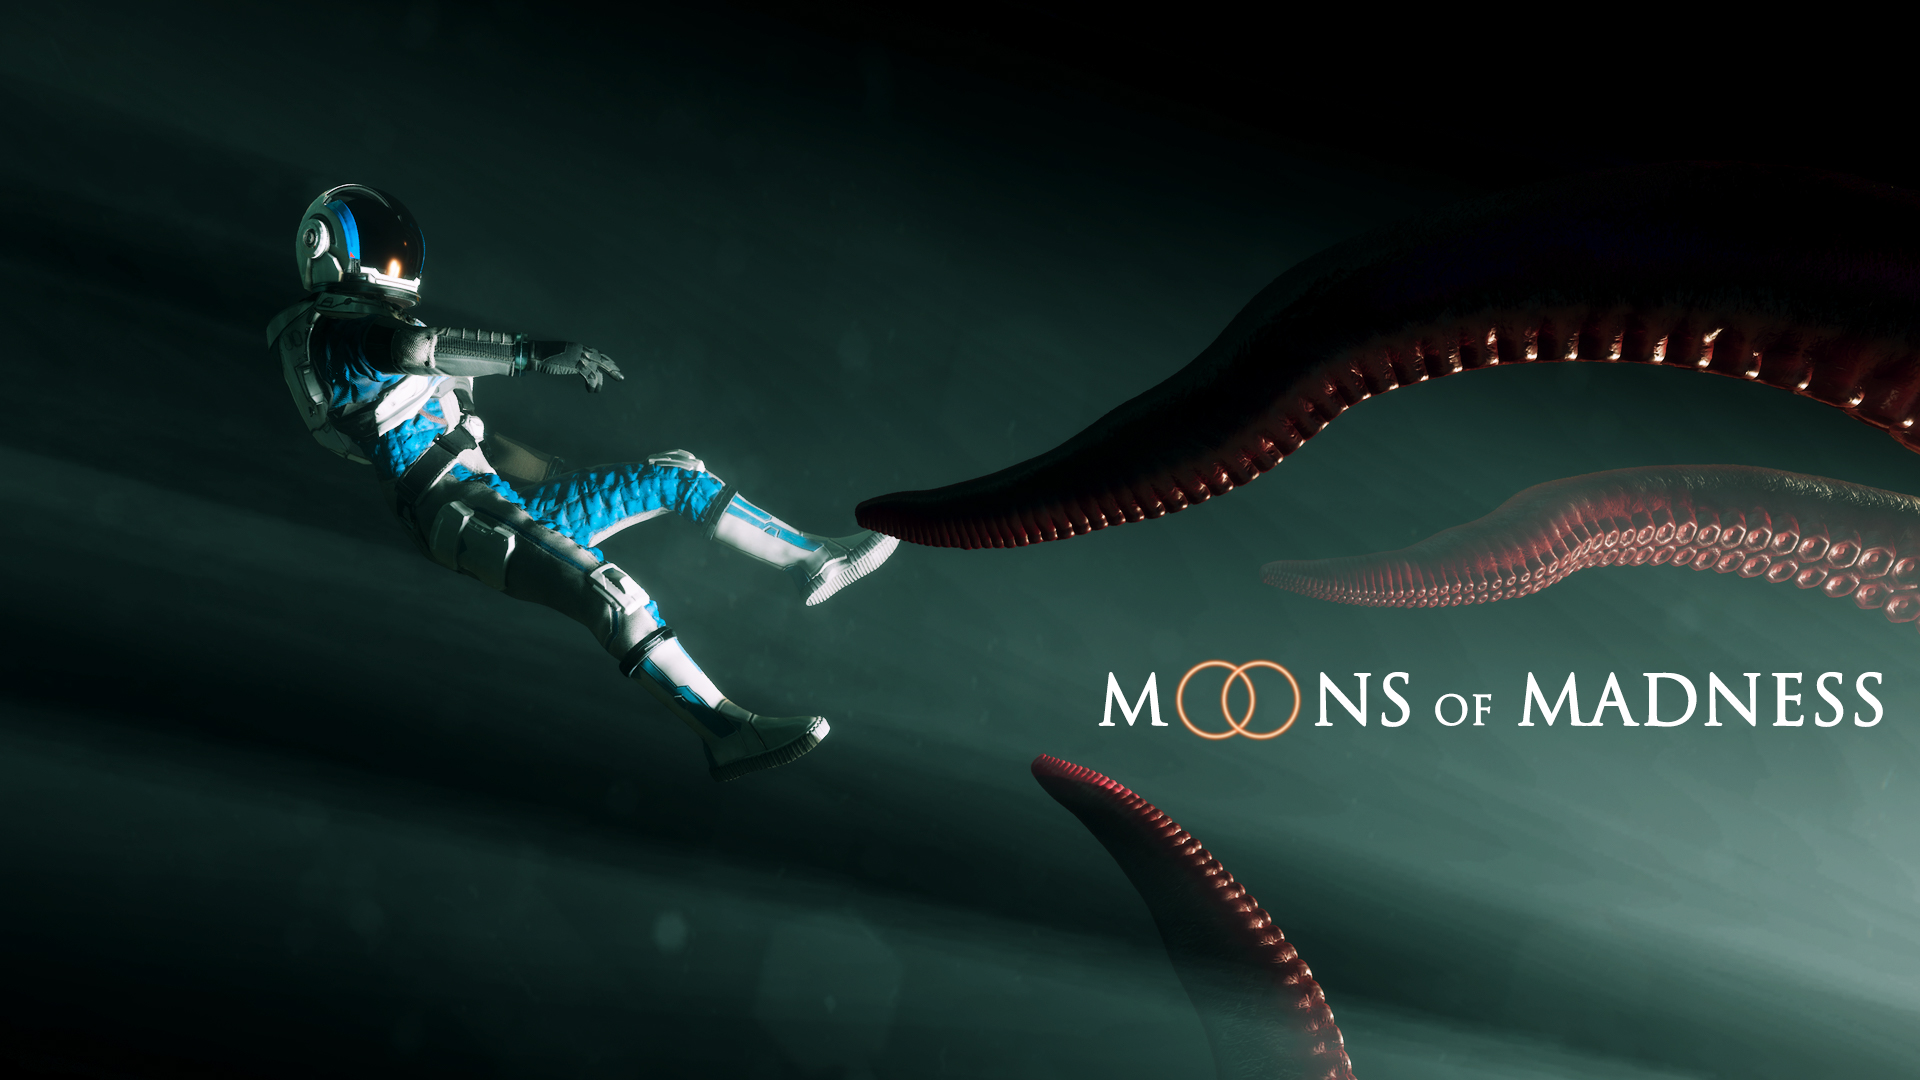 moons of madness logo